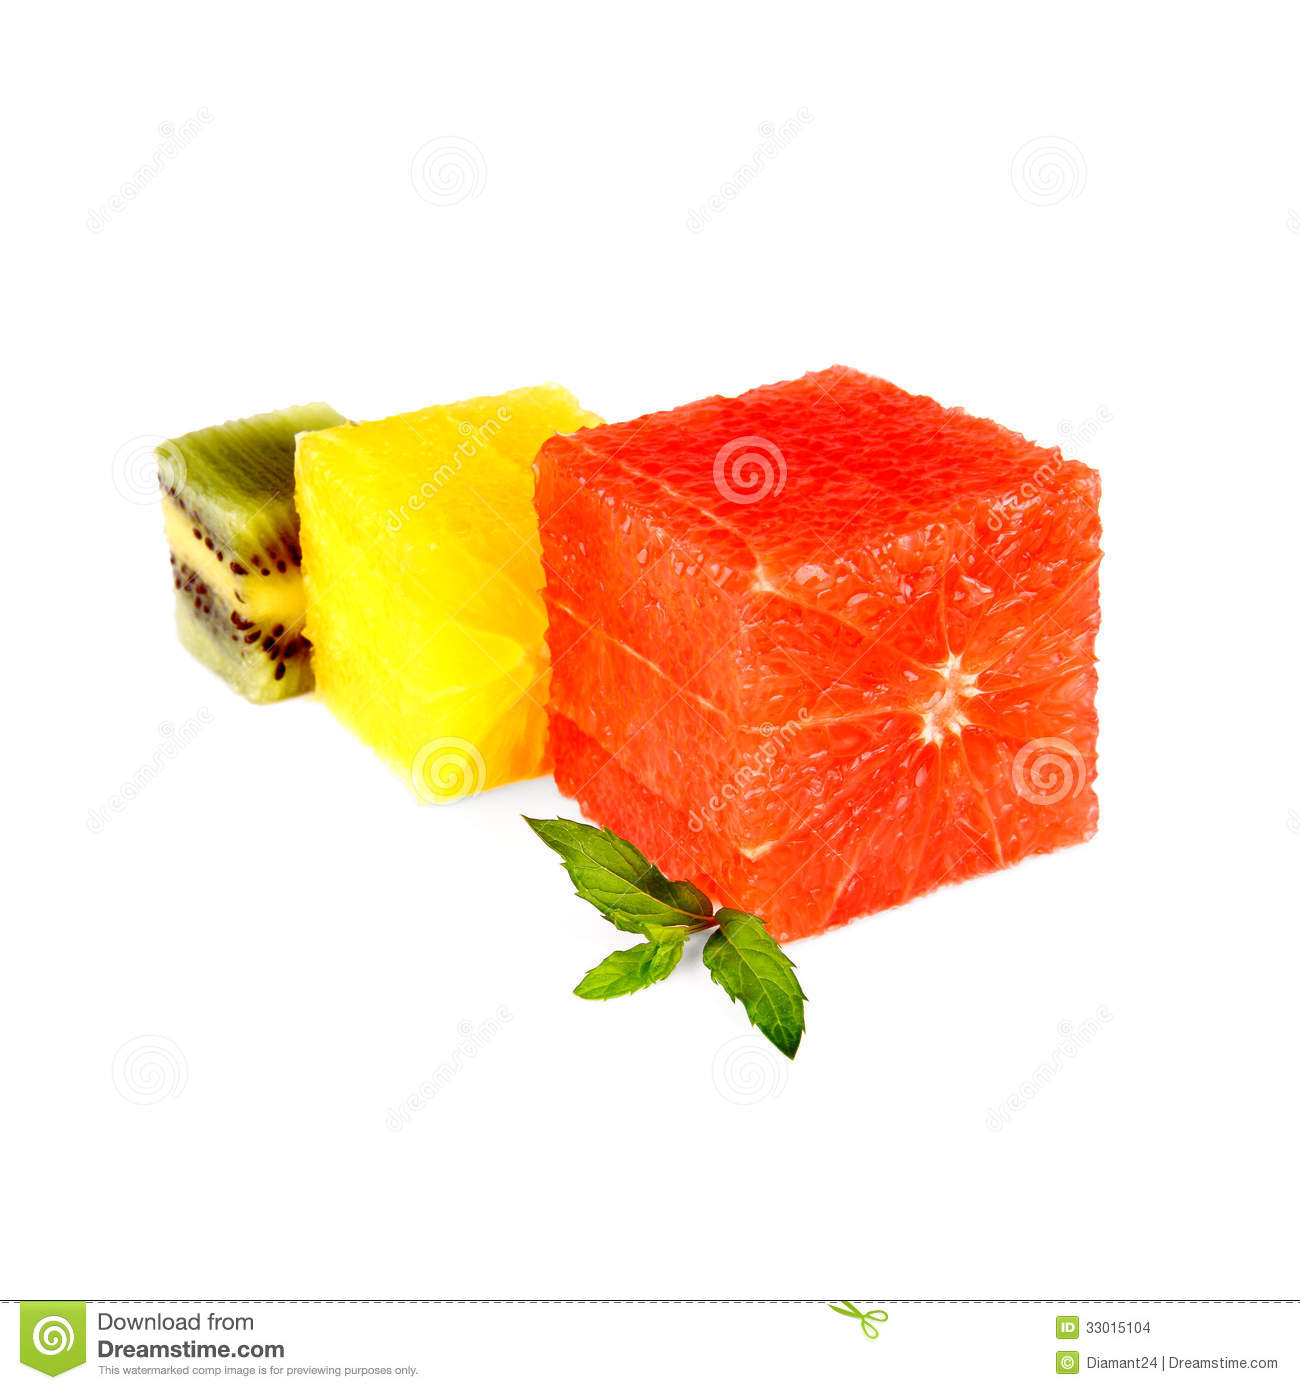 Grapefruit, kiwi and oranges cube with mint, isolated.